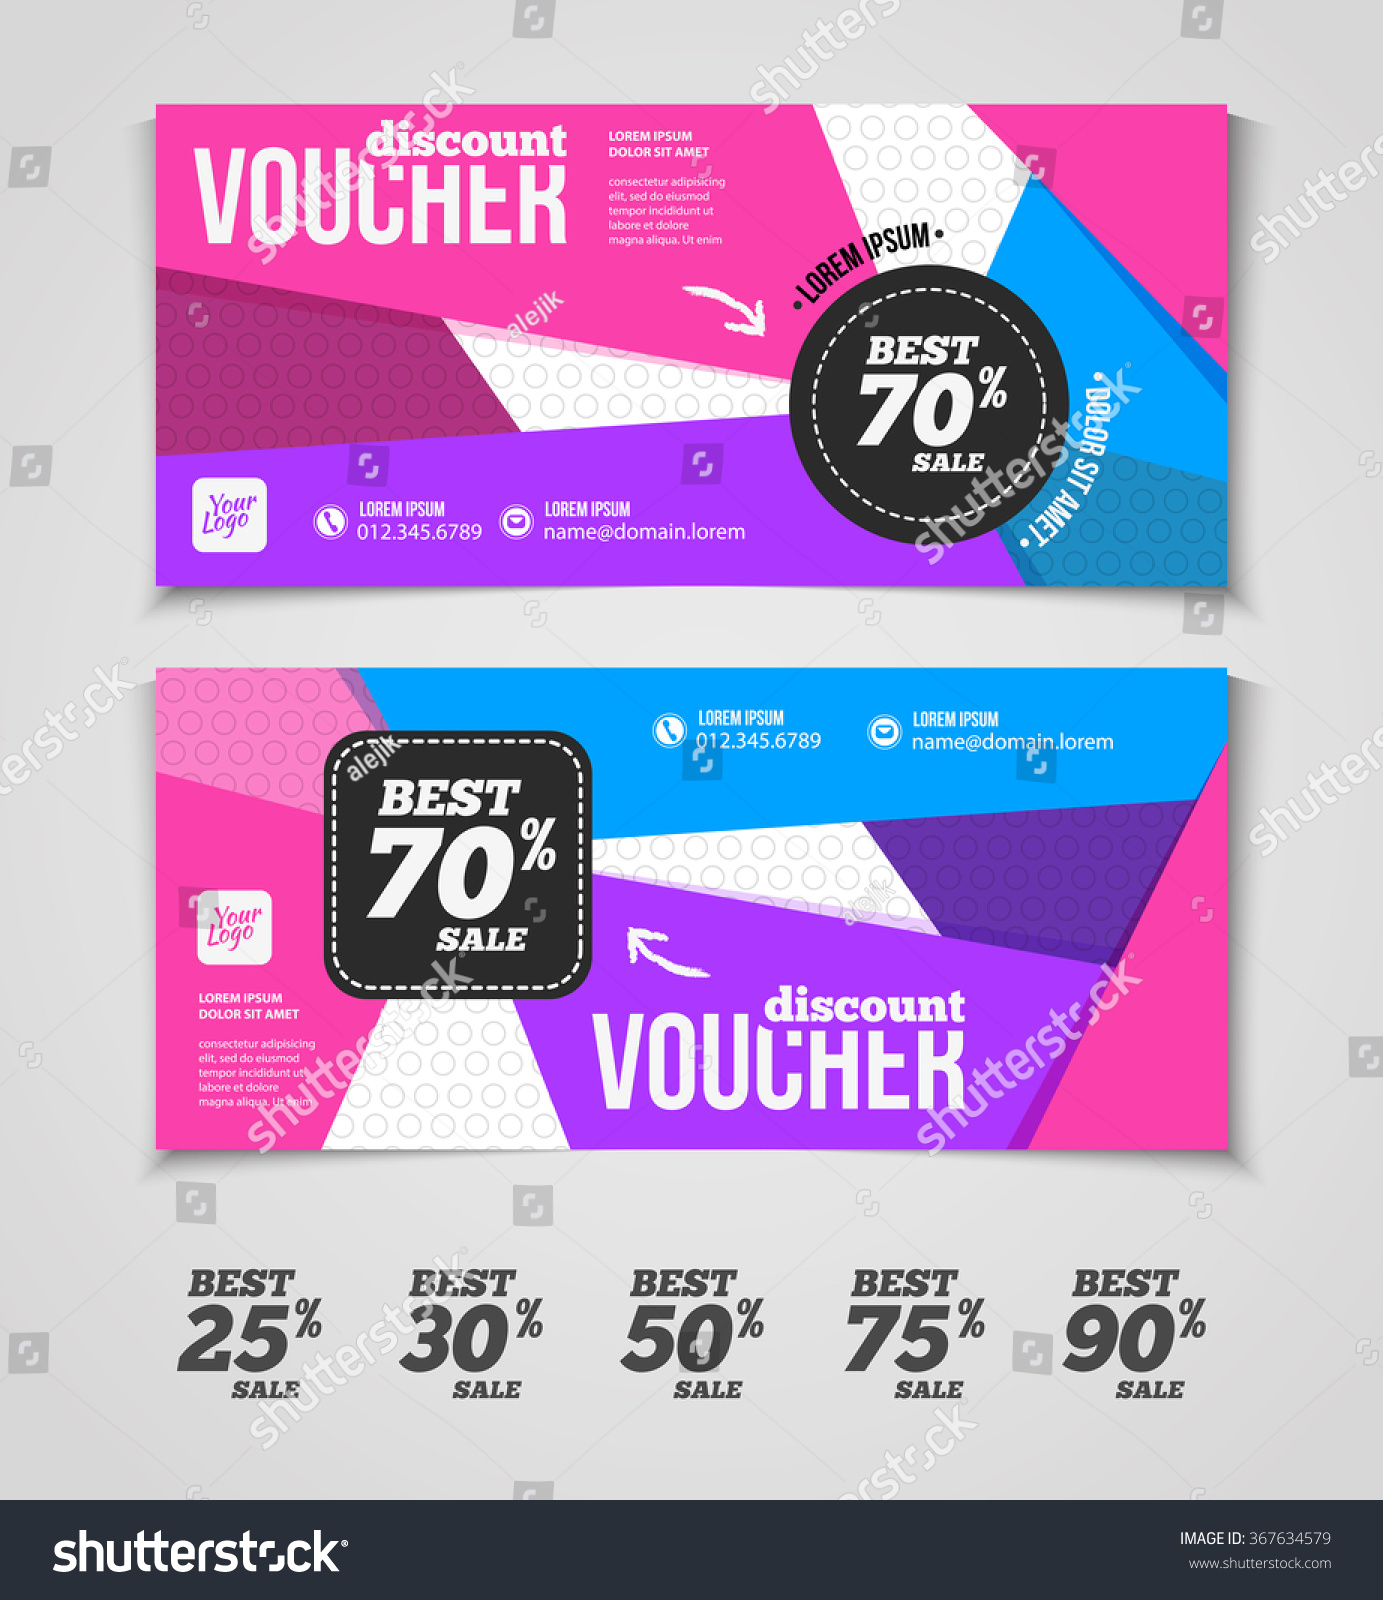 gift discount voucher template colorful modern stock vector gift or discount voucher template colorful modern design special offer or certificate coupon